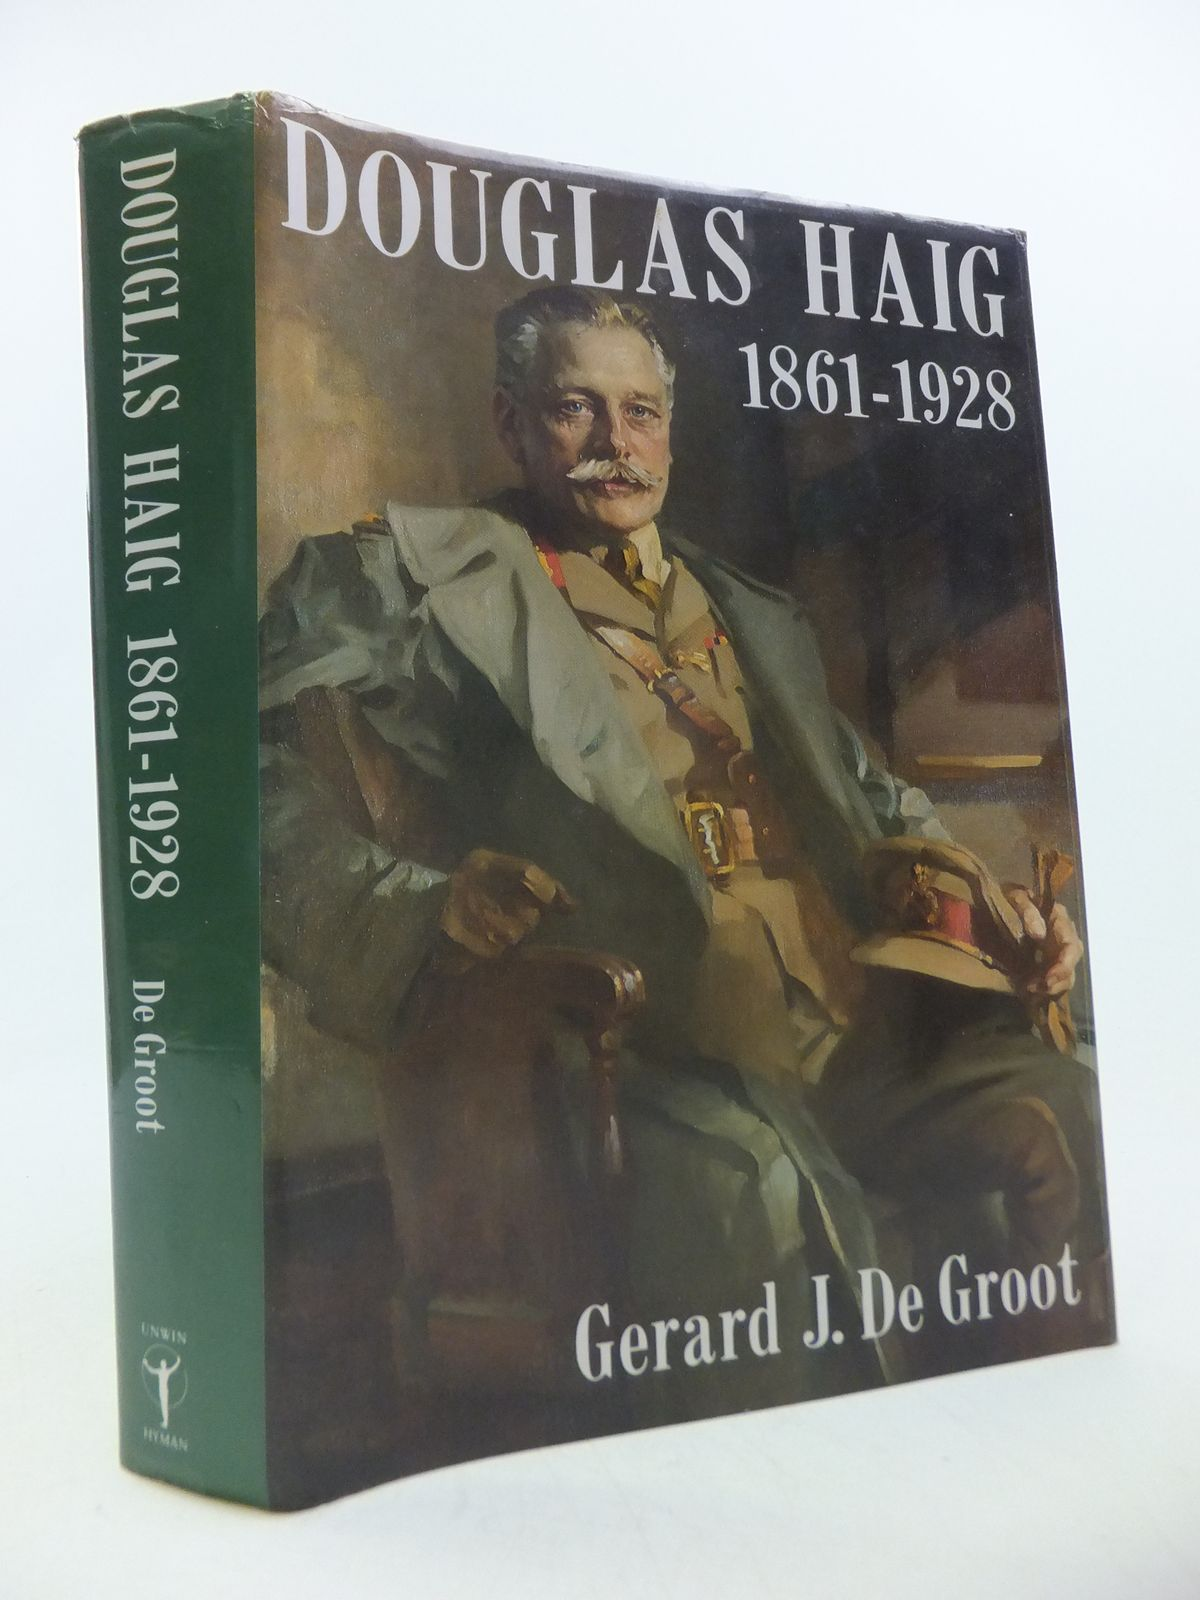 Photo of DOUGLAS HAIG, 1861-1928 written by De Groot, Gerard J. published by Unwin Hyman (STOCK CODE: 1808768)  for sale by Stella & Rose's Books